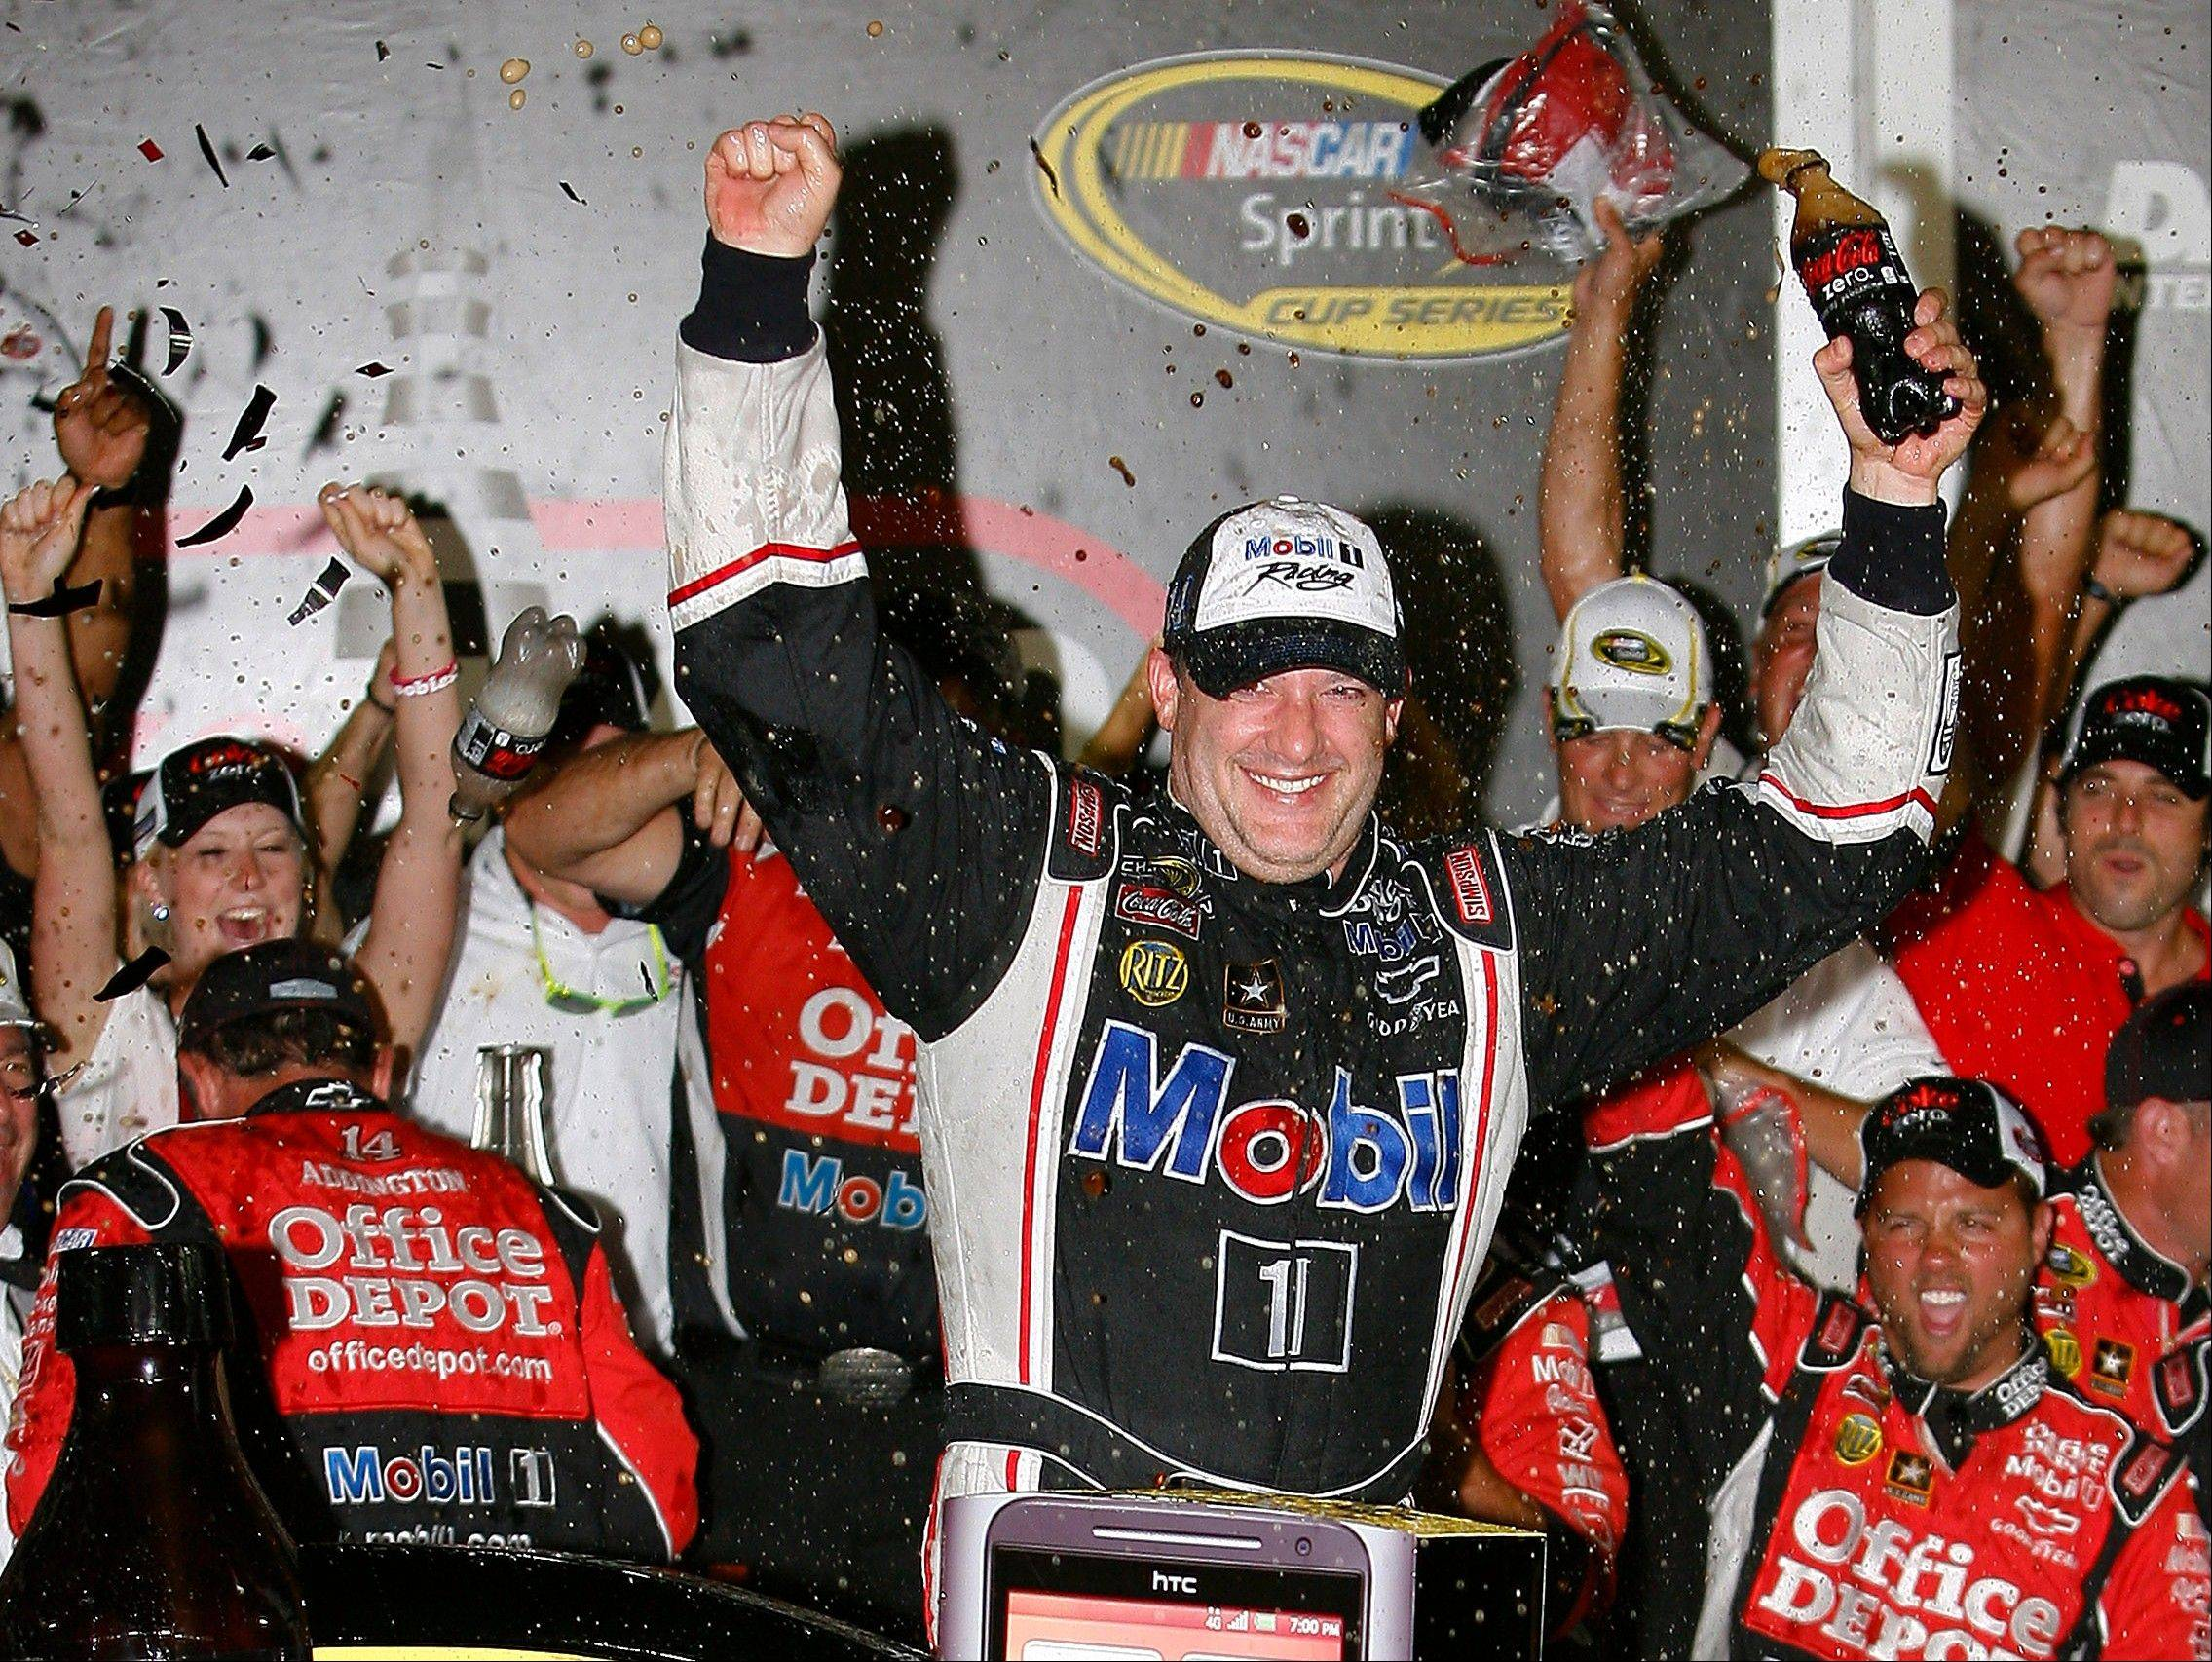 Tony Stewart makes late move to win at Daytona